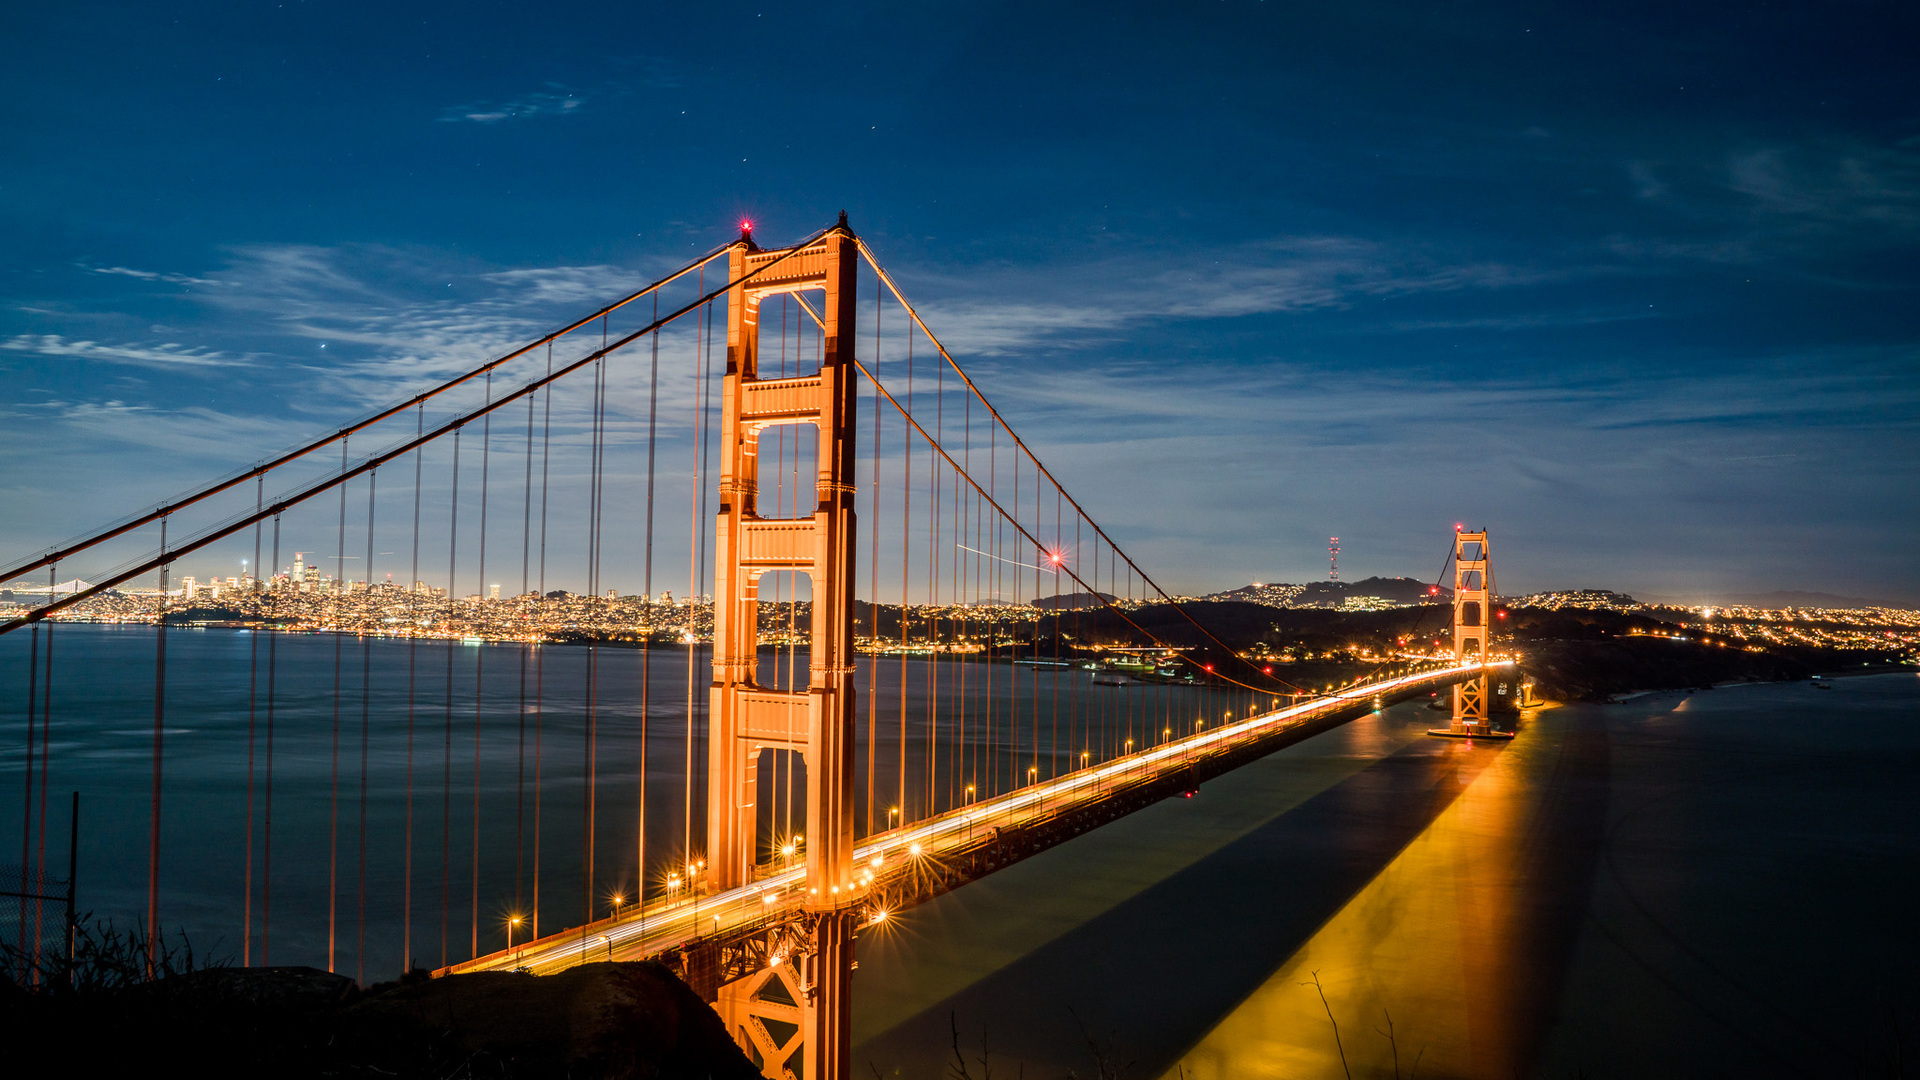 1920x1080 golden gate bridge laptop full hd 1080p hd 4k wallpapers images backgrounds photos - San francisco hd ...